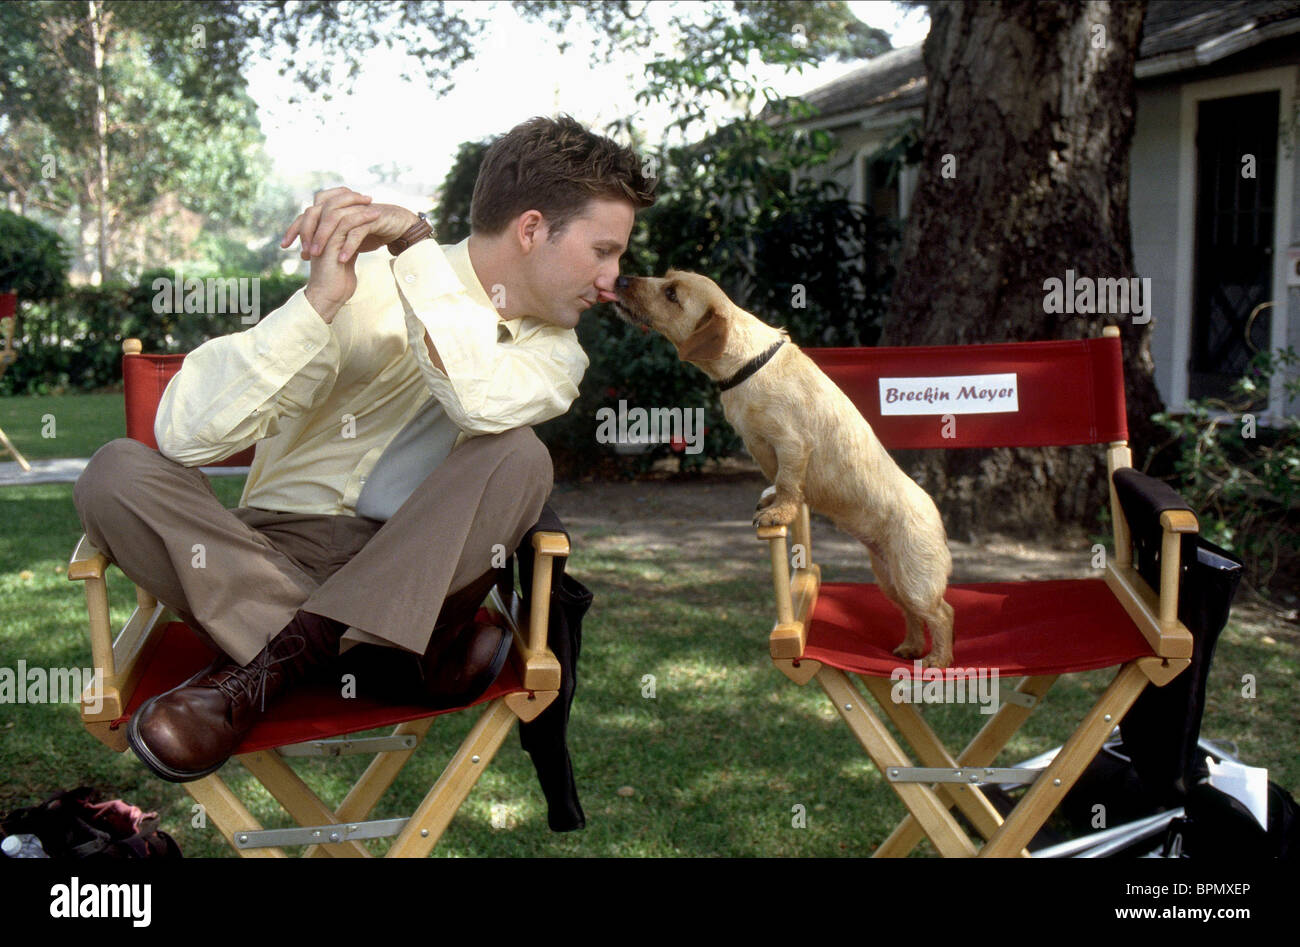 breckin meyer amp odie garfield the movie 2004 stock photo